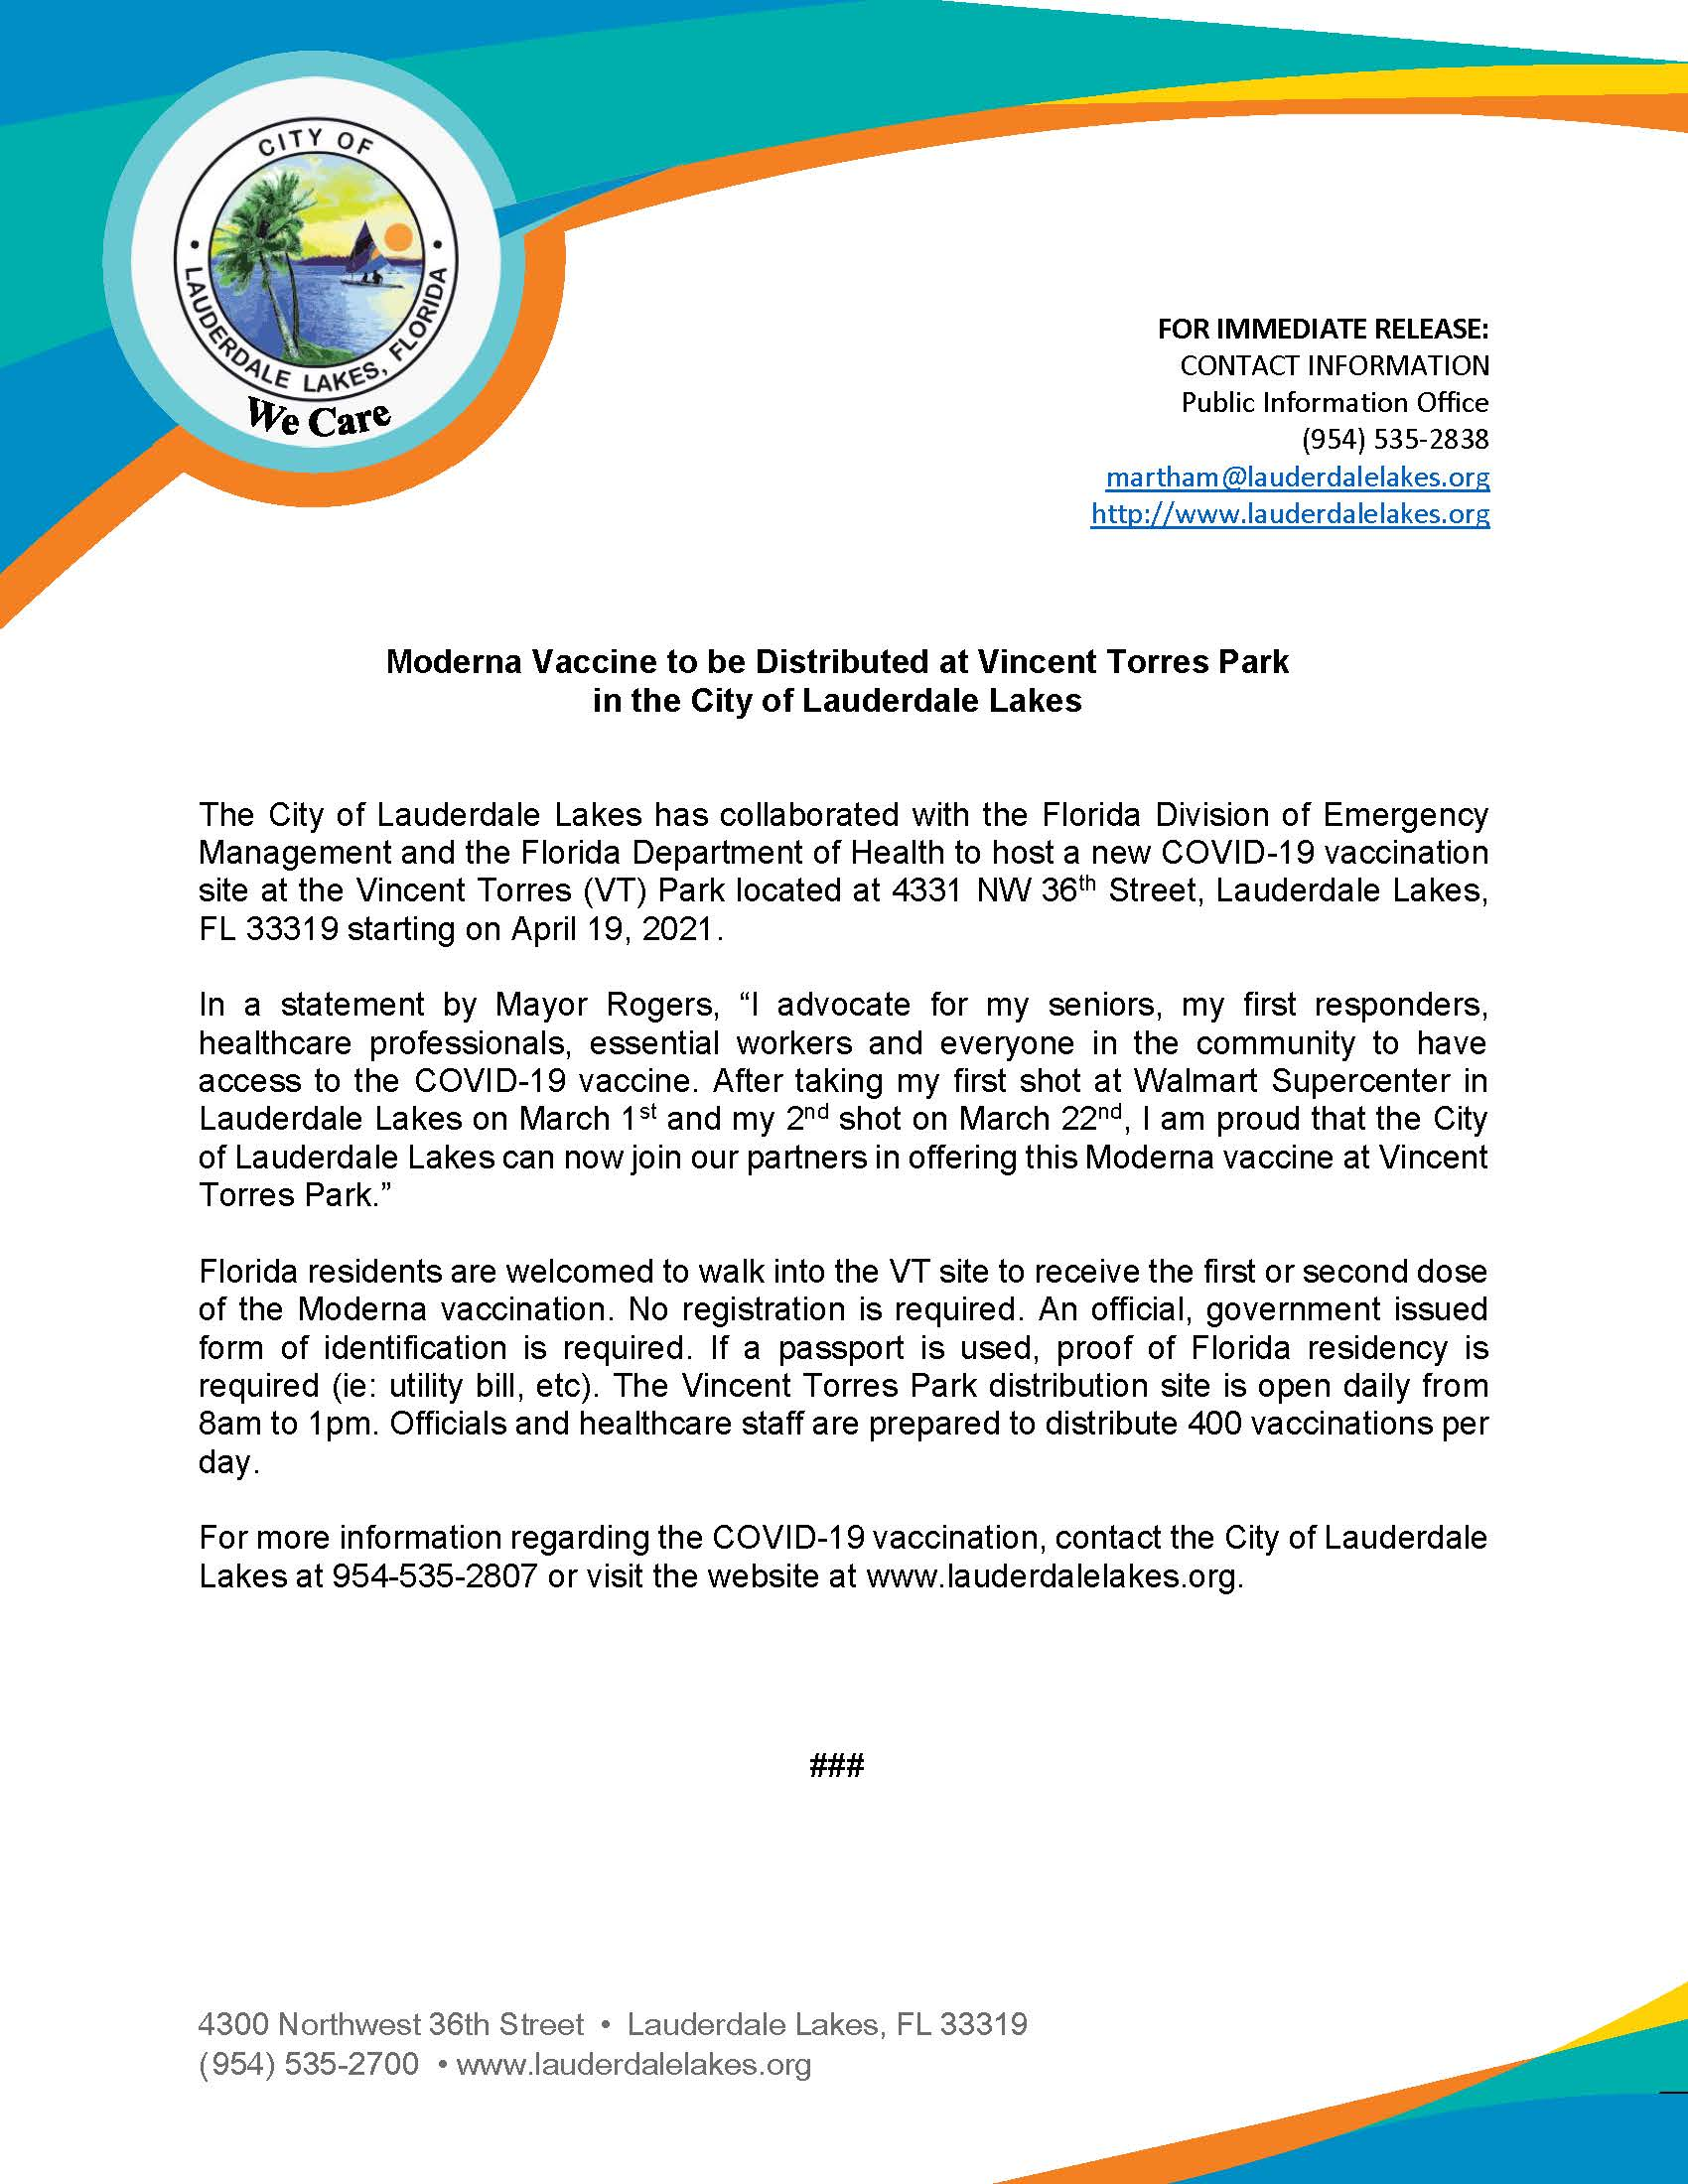 Press Release - Moderna Vaccination at vt Park (002)